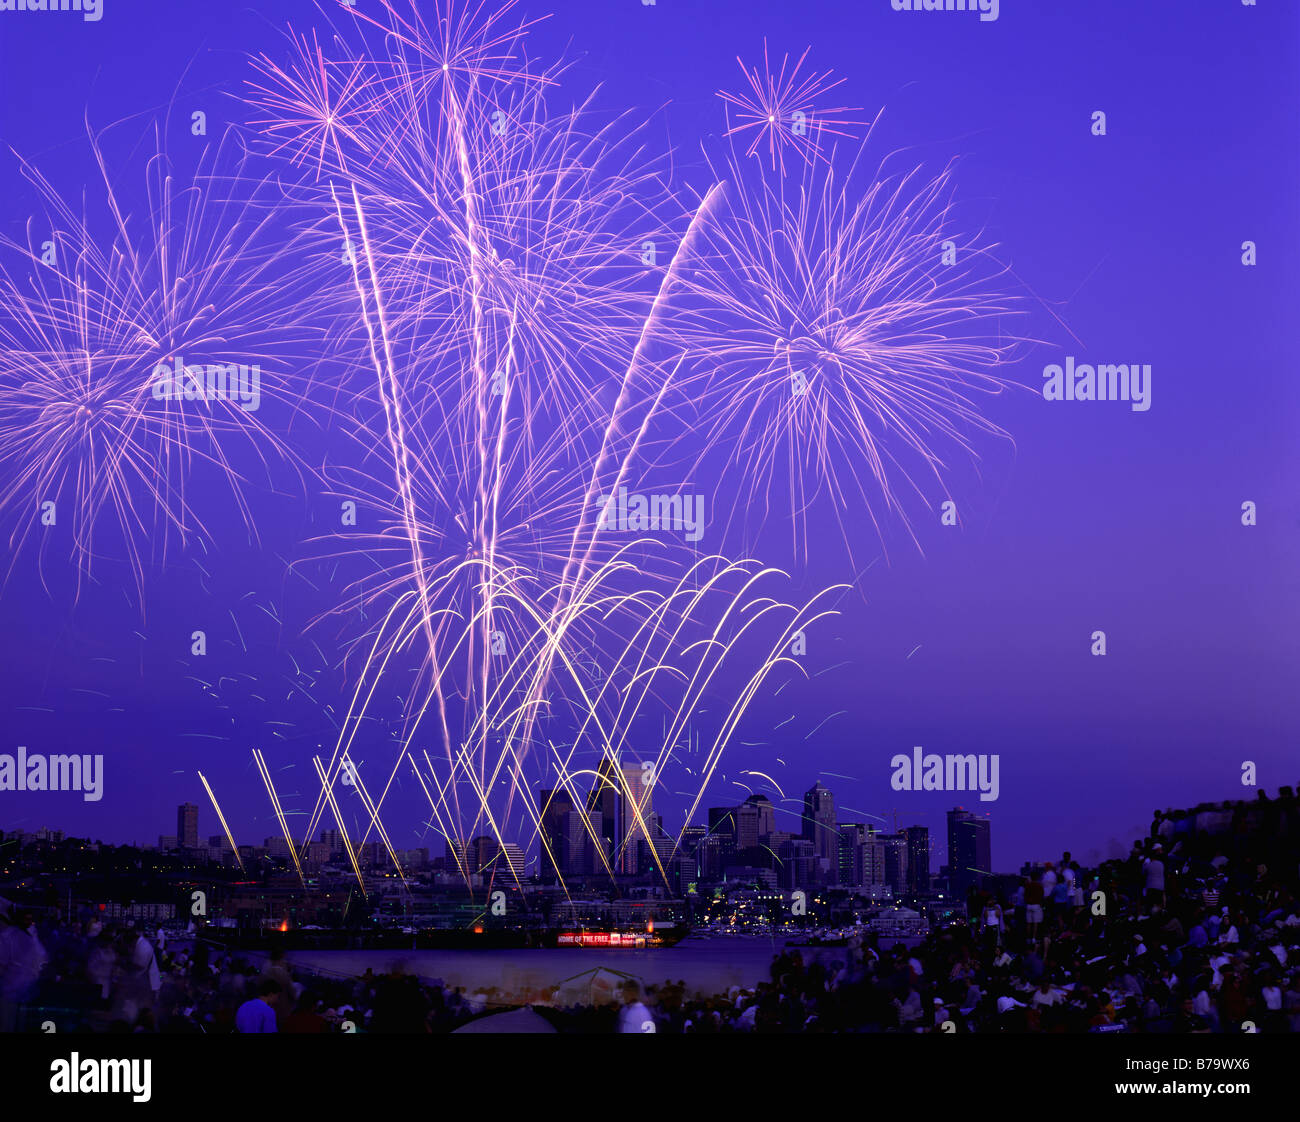 WASHINGTON - Fourth of July fireworks over Lake Union in downtown Seattle. - Stock Image